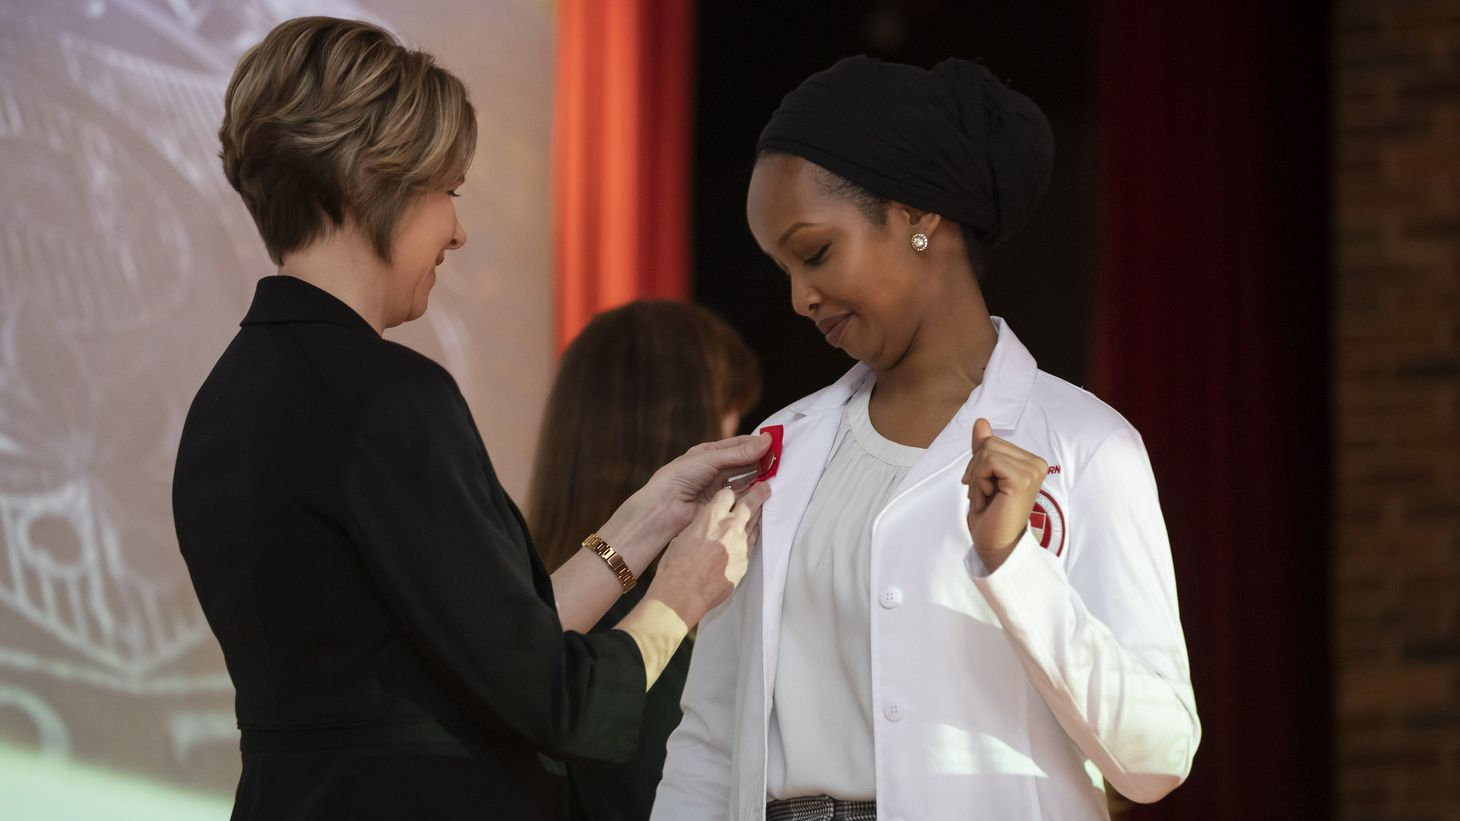 Ohio State University Graduation 2020.2020 Graduate Entry Pinning And White Coat Ceremony The